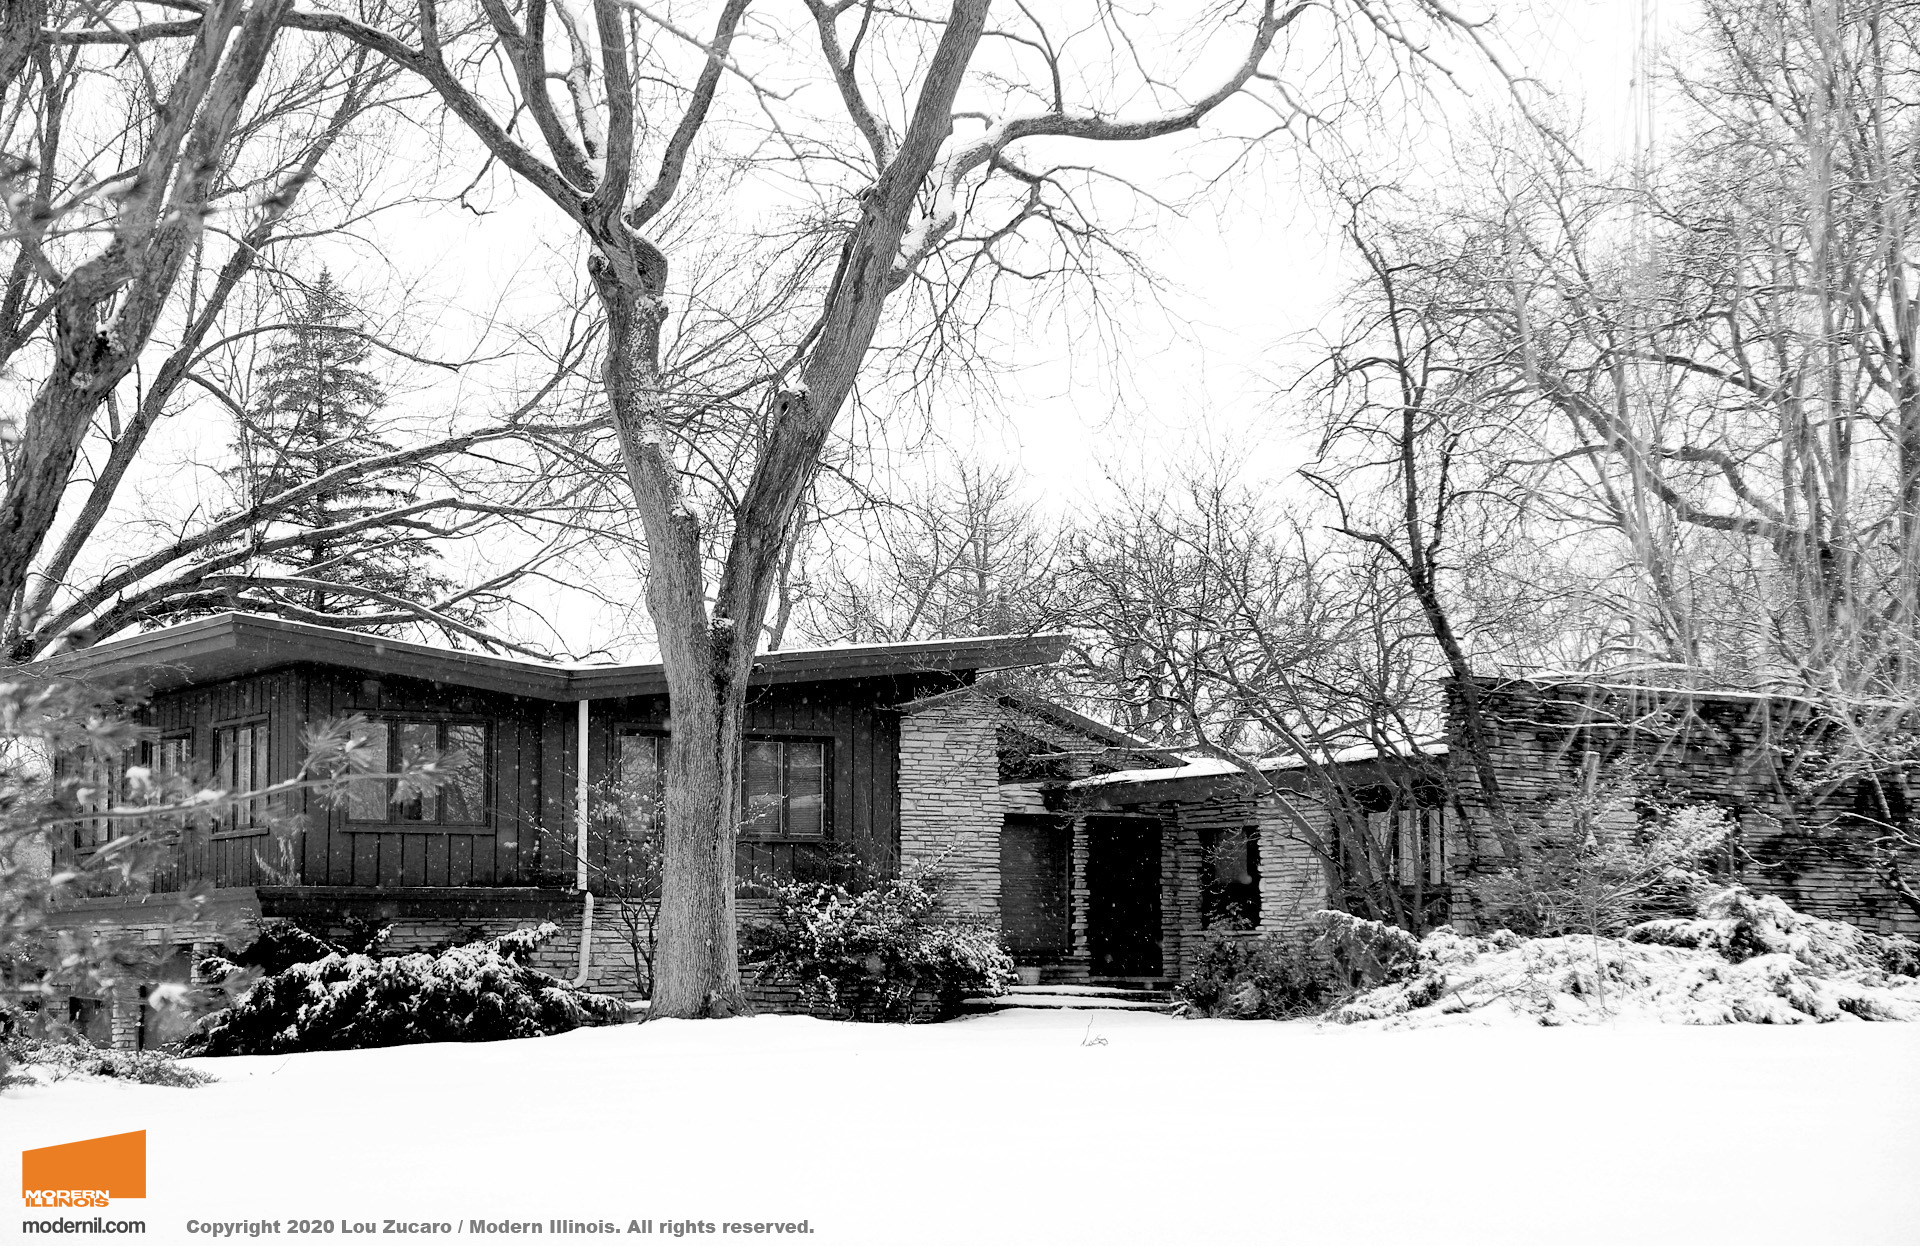 Architect: Joel Hillman. @ Copyright 2020 Lou Zucaro / Modern Illinois. All rights reserved. modernil.com